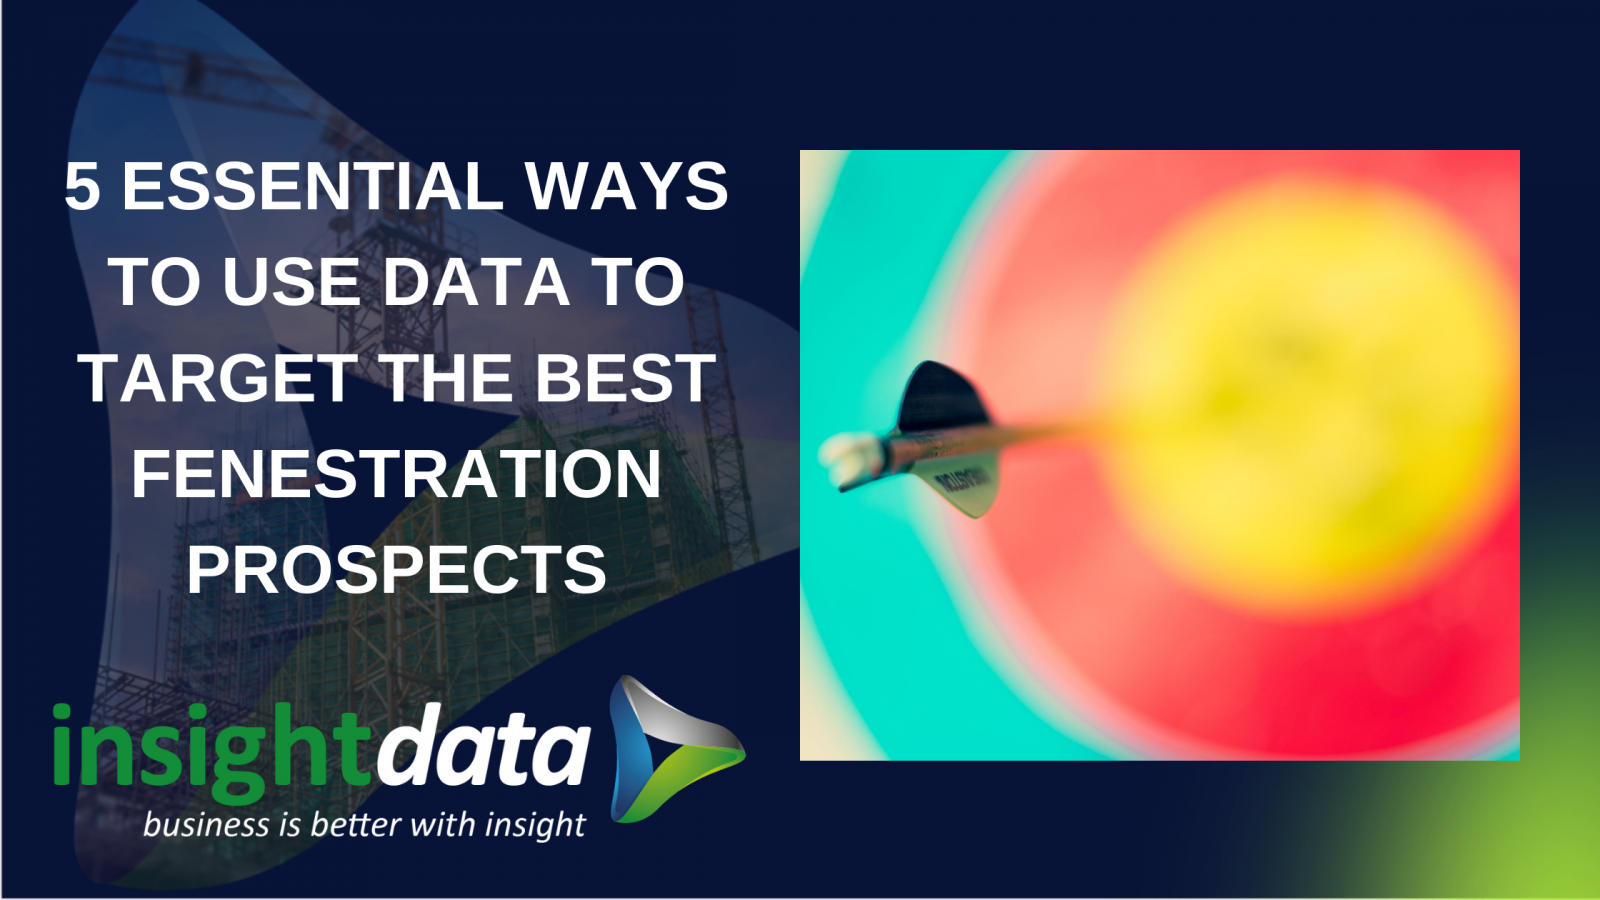 get new fenetsration prospects using data insights image